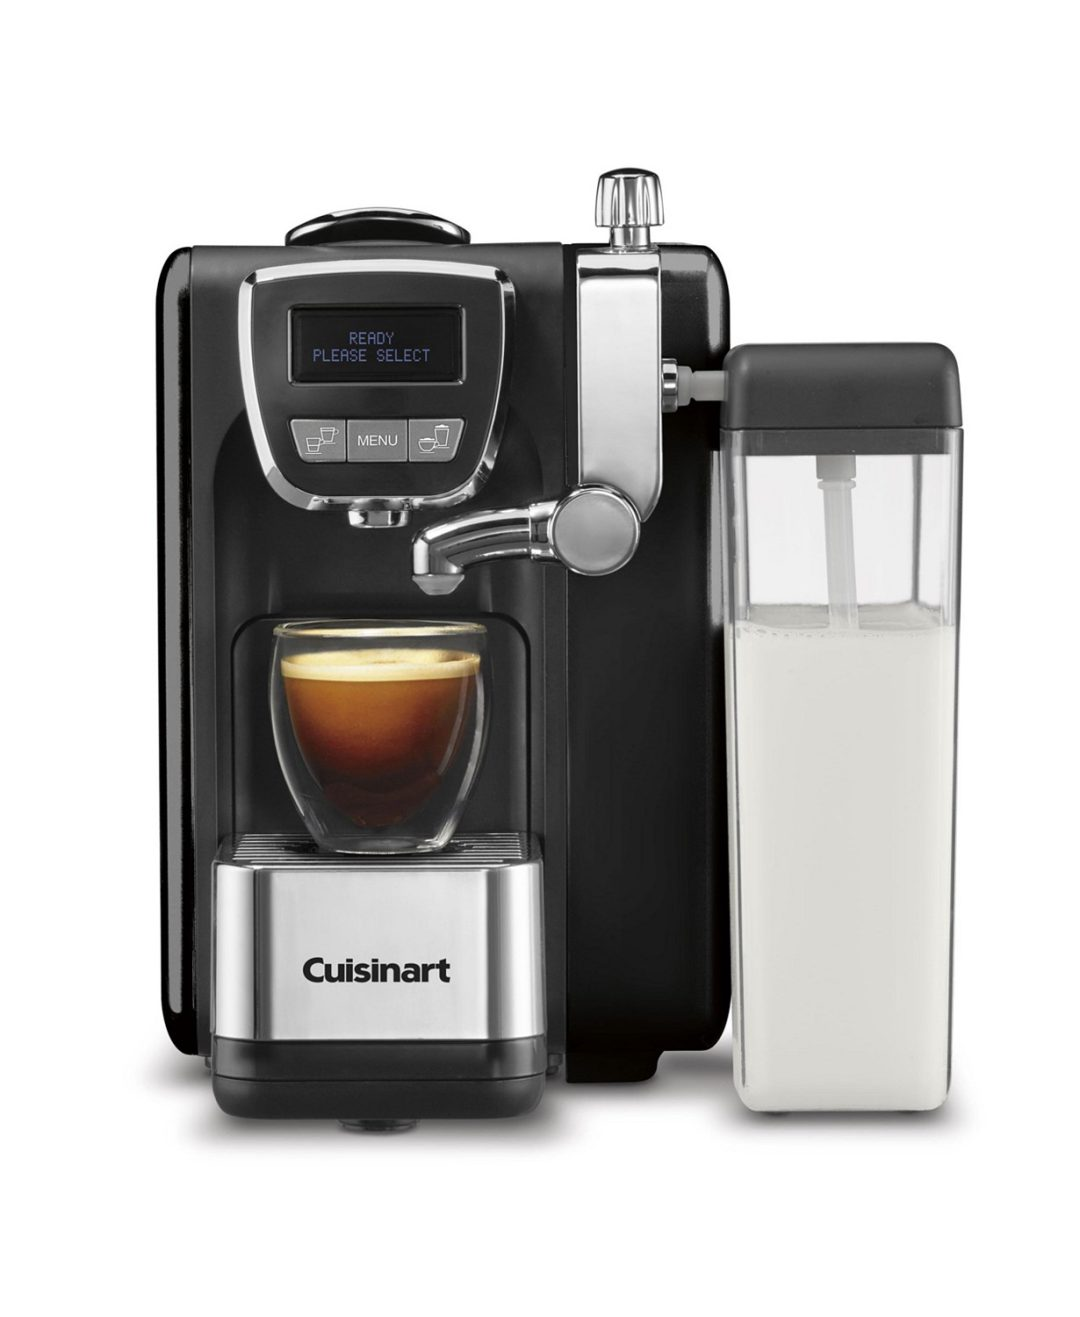 Luxury gift ideas for your boss: coffee machine